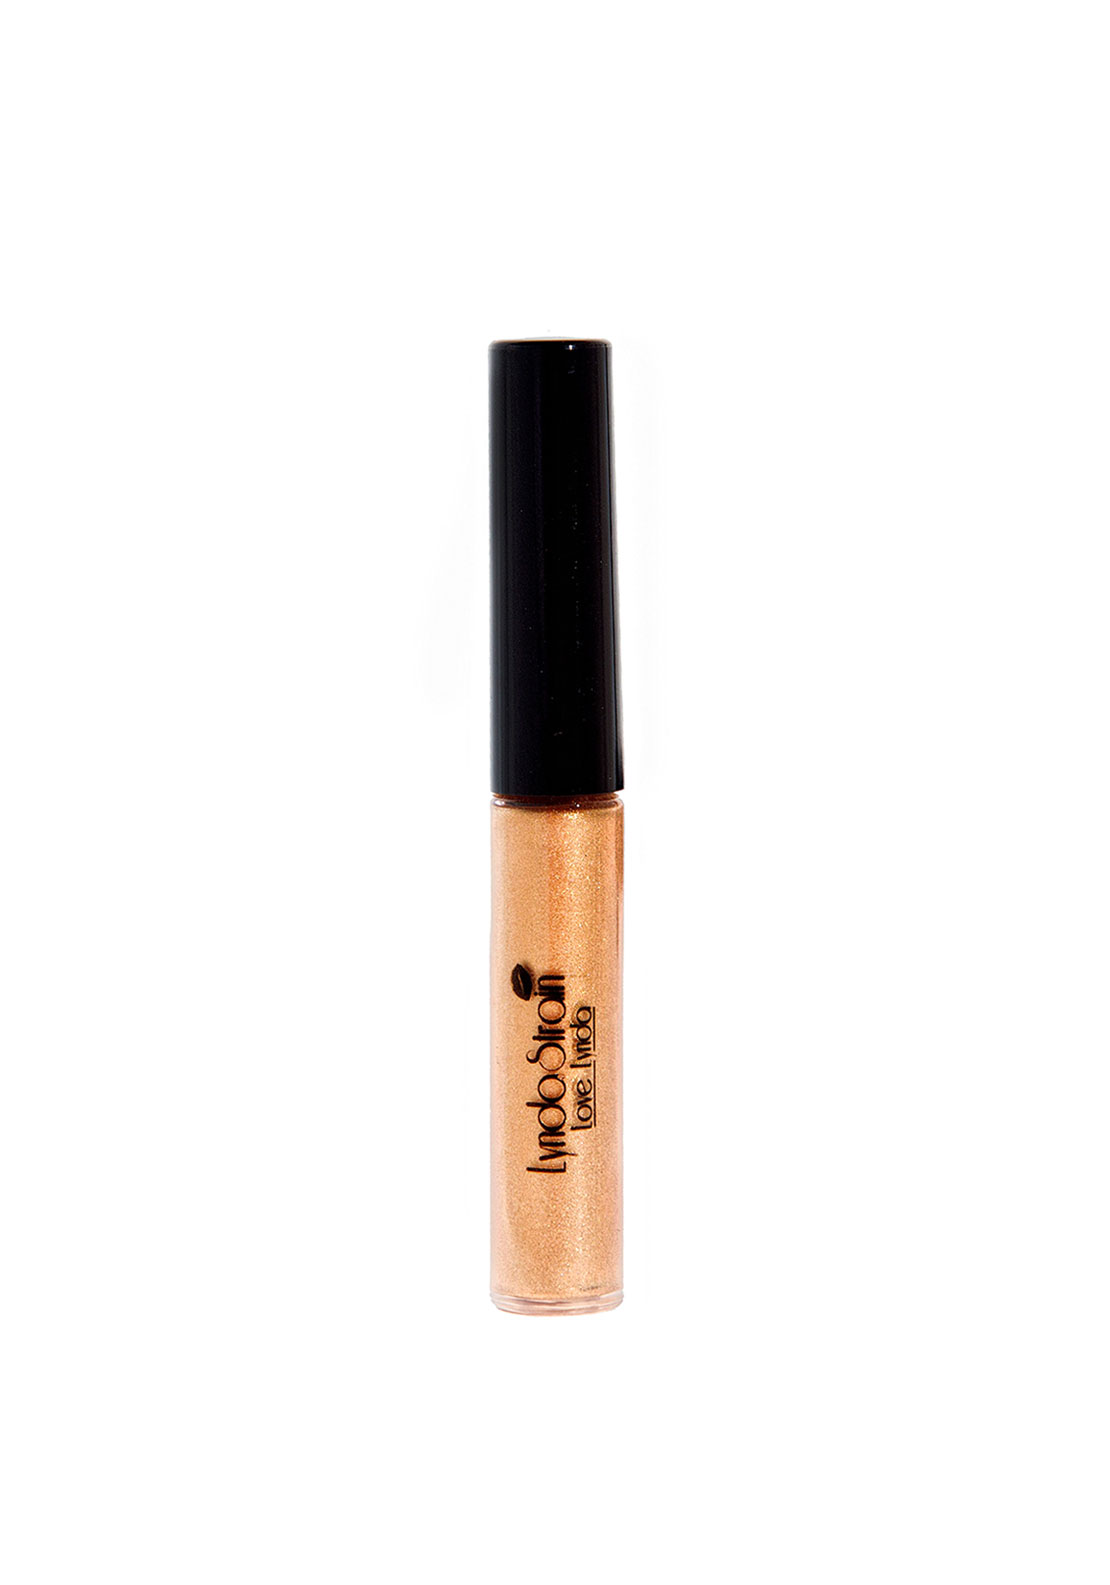 Lynda Strain Love Lynda Define Liquid Liner, Pyramid Gold